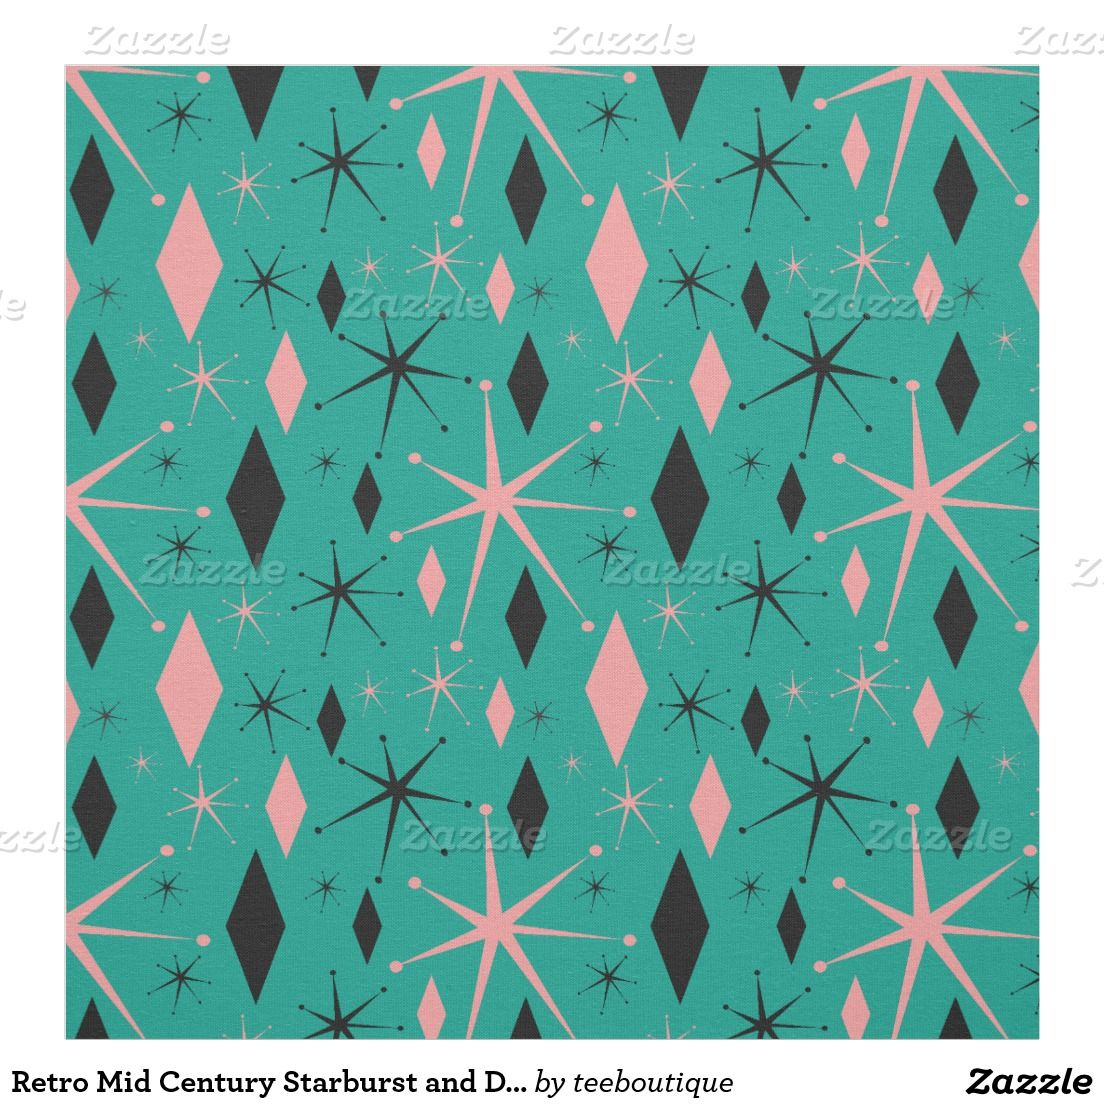 Retro Mid Century Starburst and Diamonds Fabric Pattern